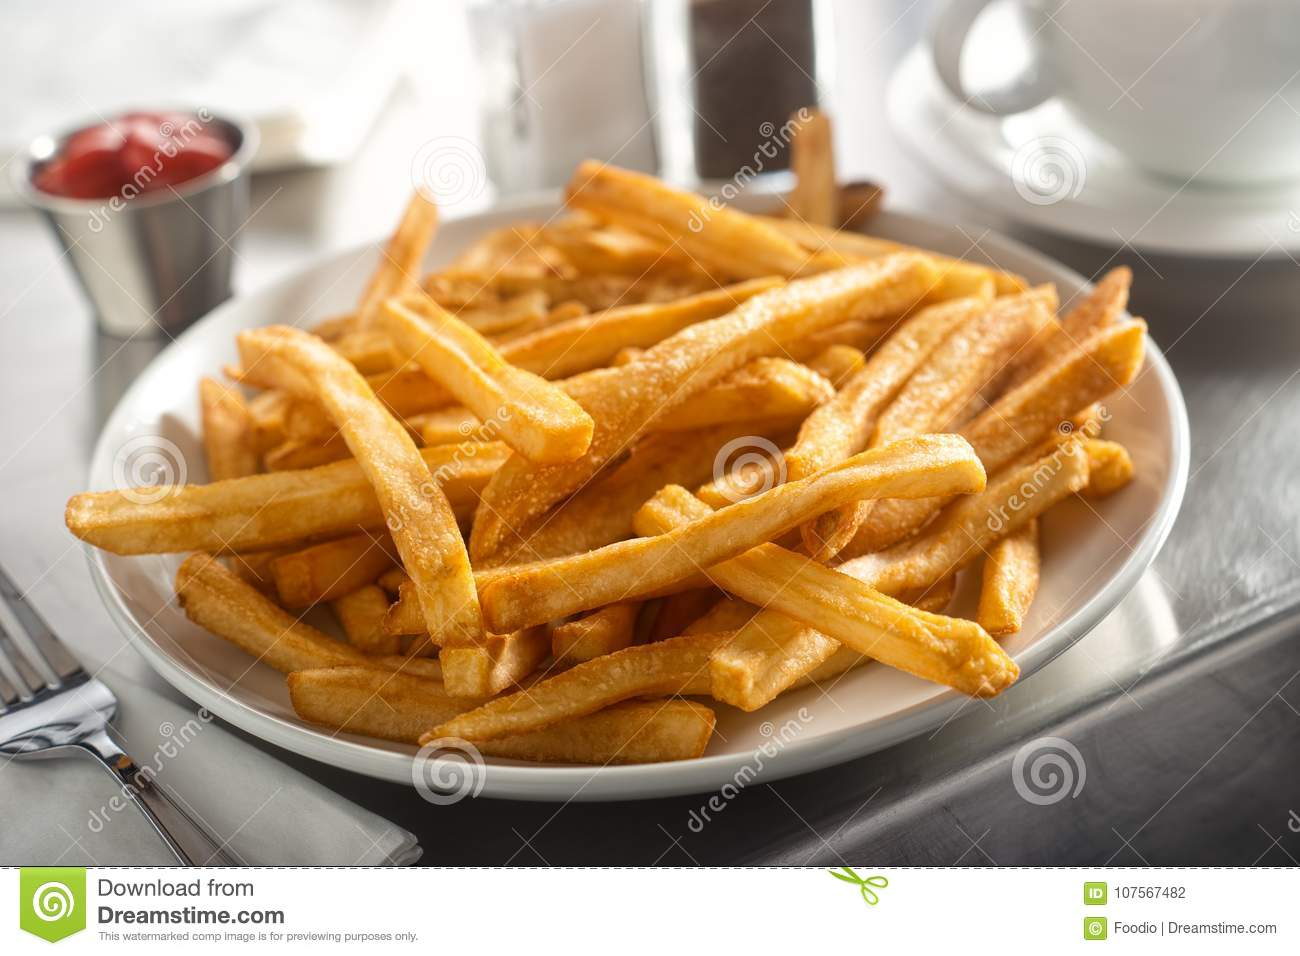 French Fries in a Diner